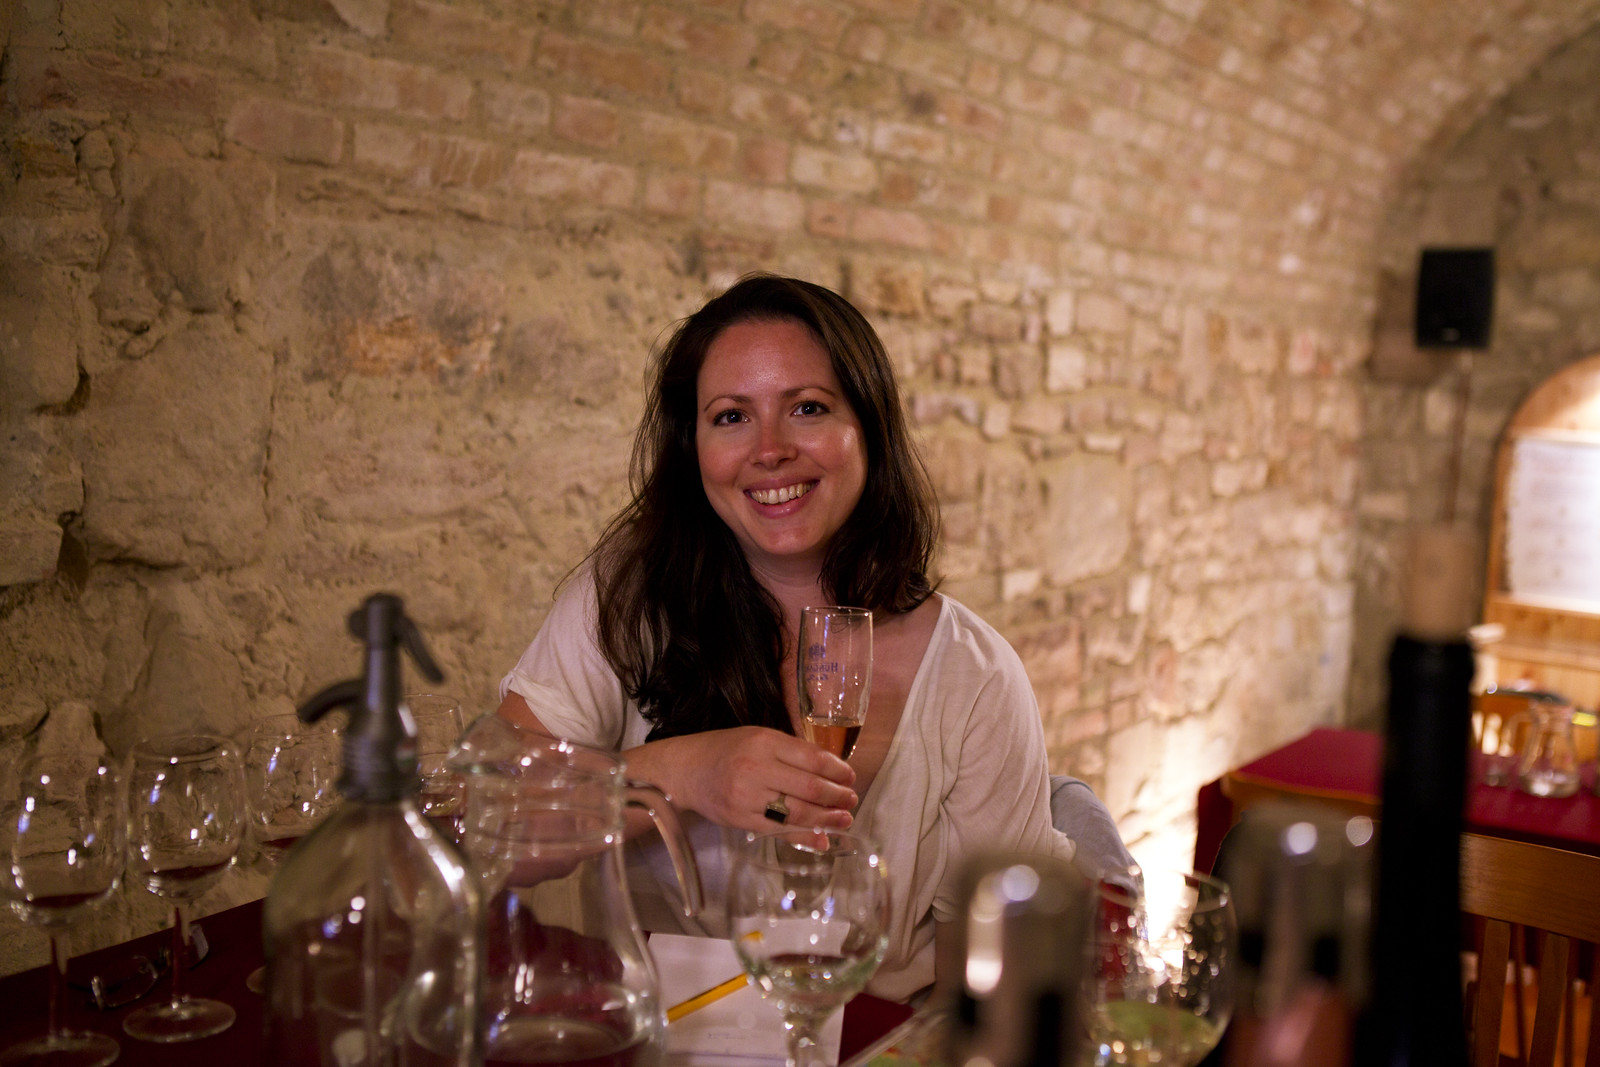 Mon at the Faust Wine Cellar